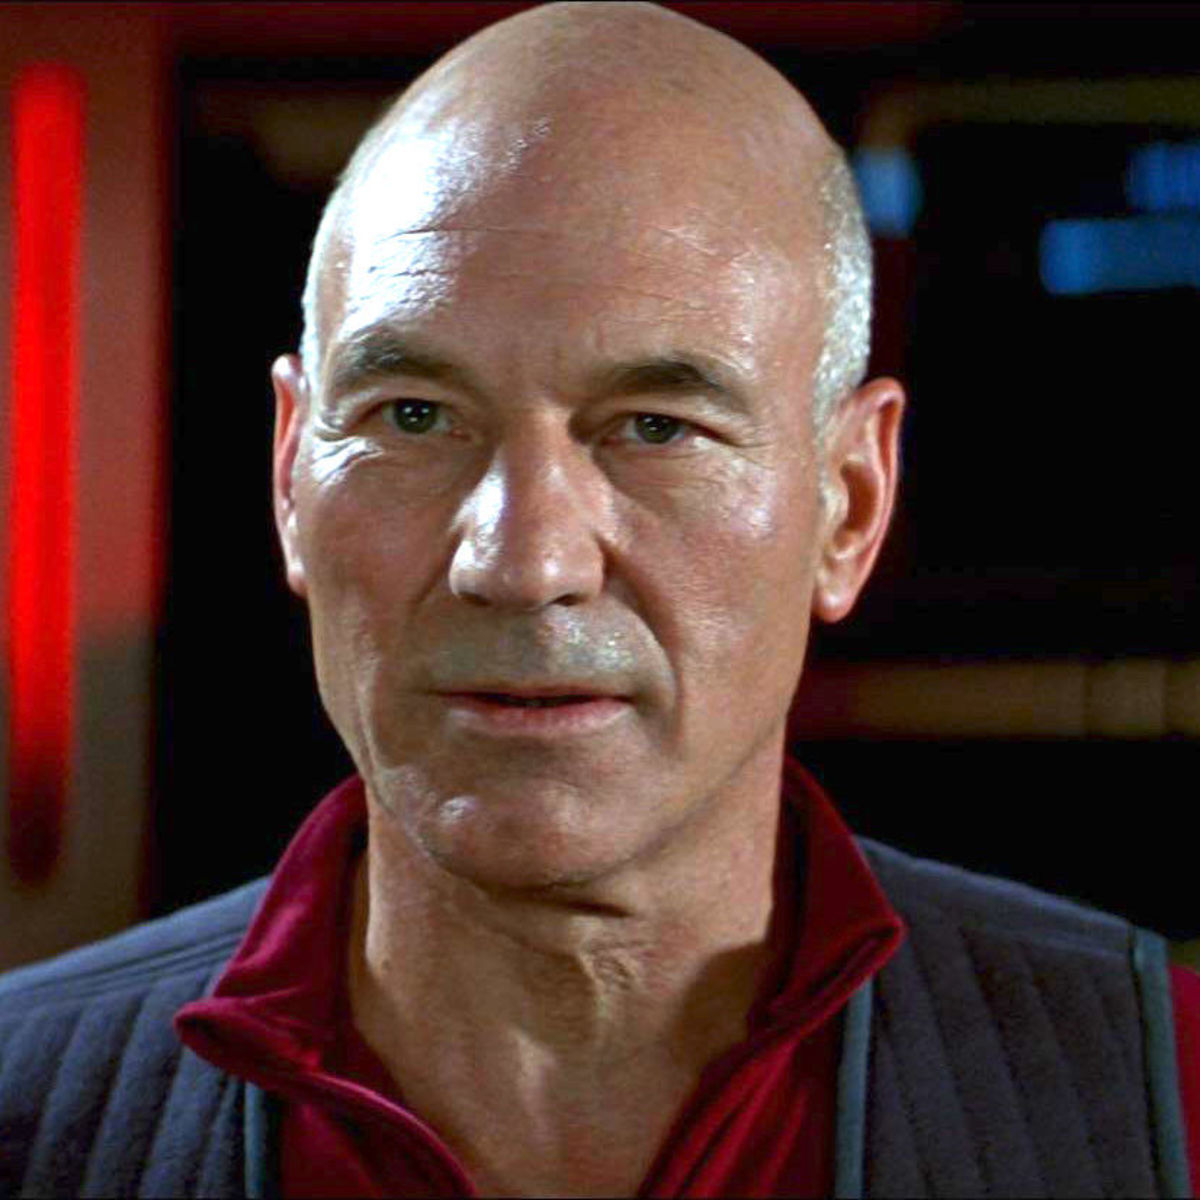 picard happy first contact